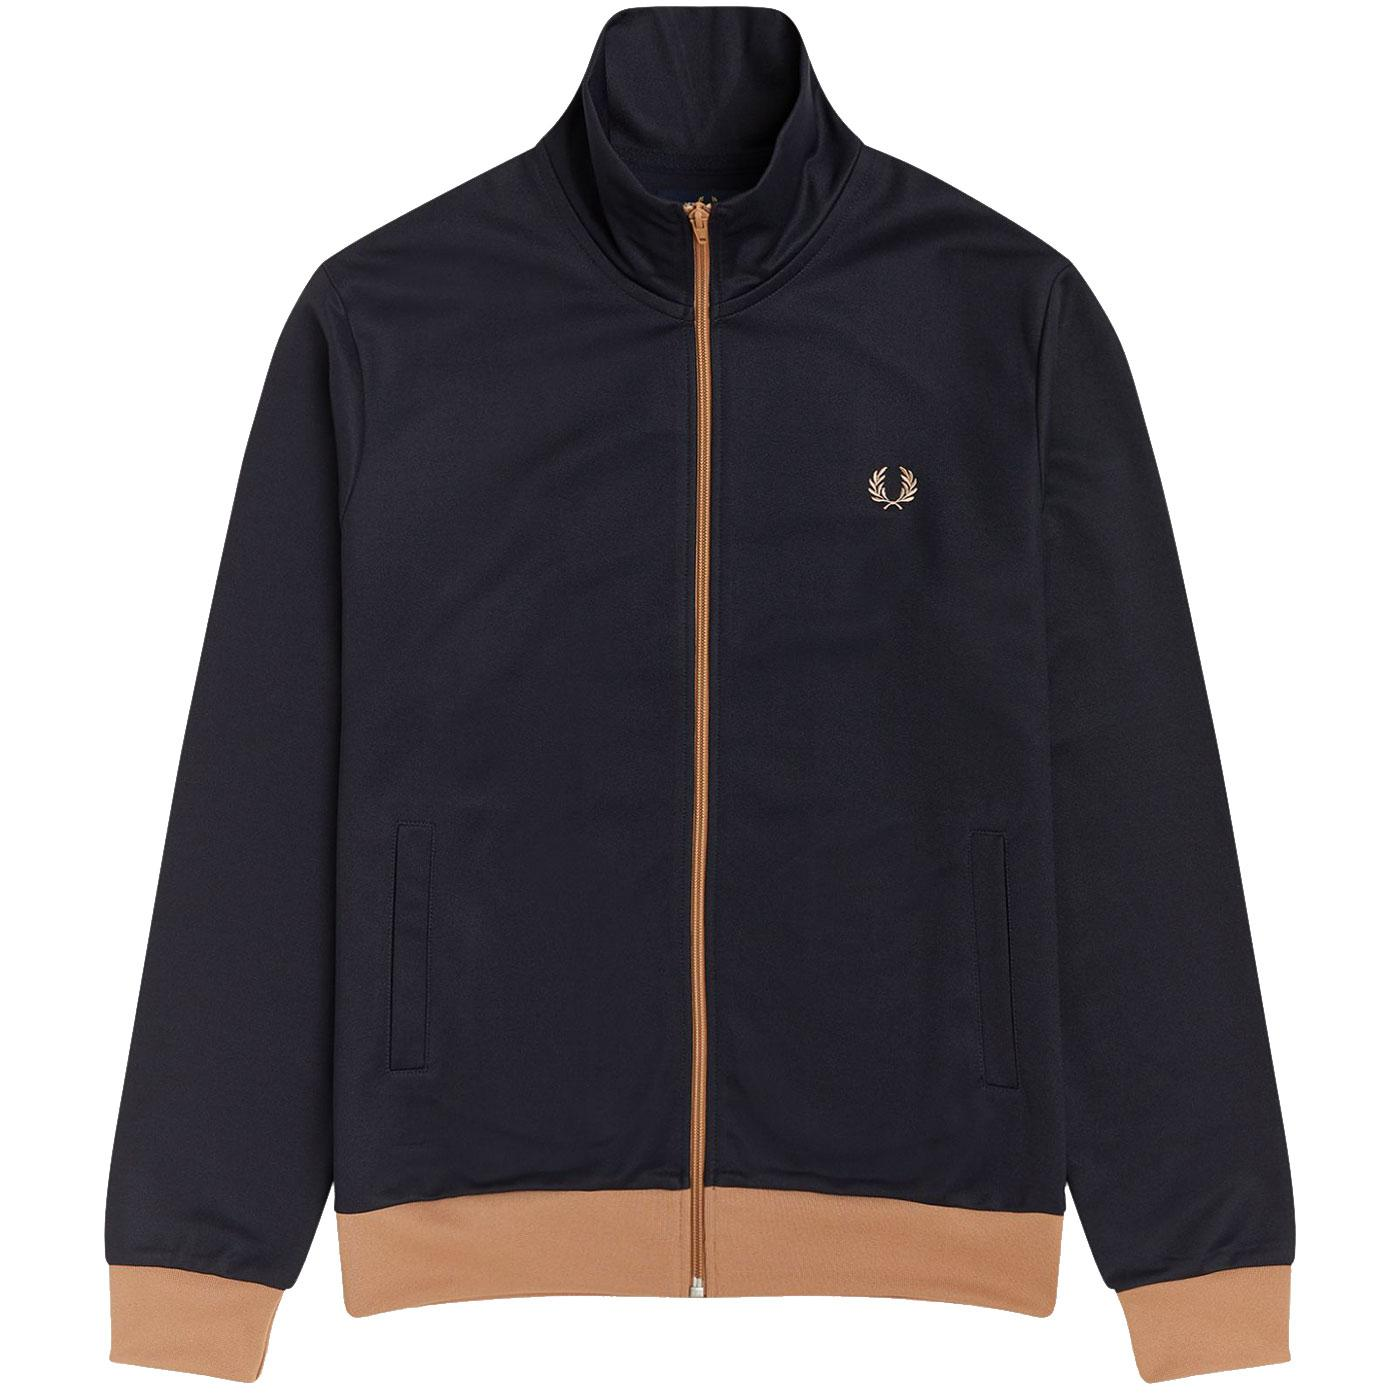 FRED PERRY Mens Retro Contrast Trim Track Top (N)